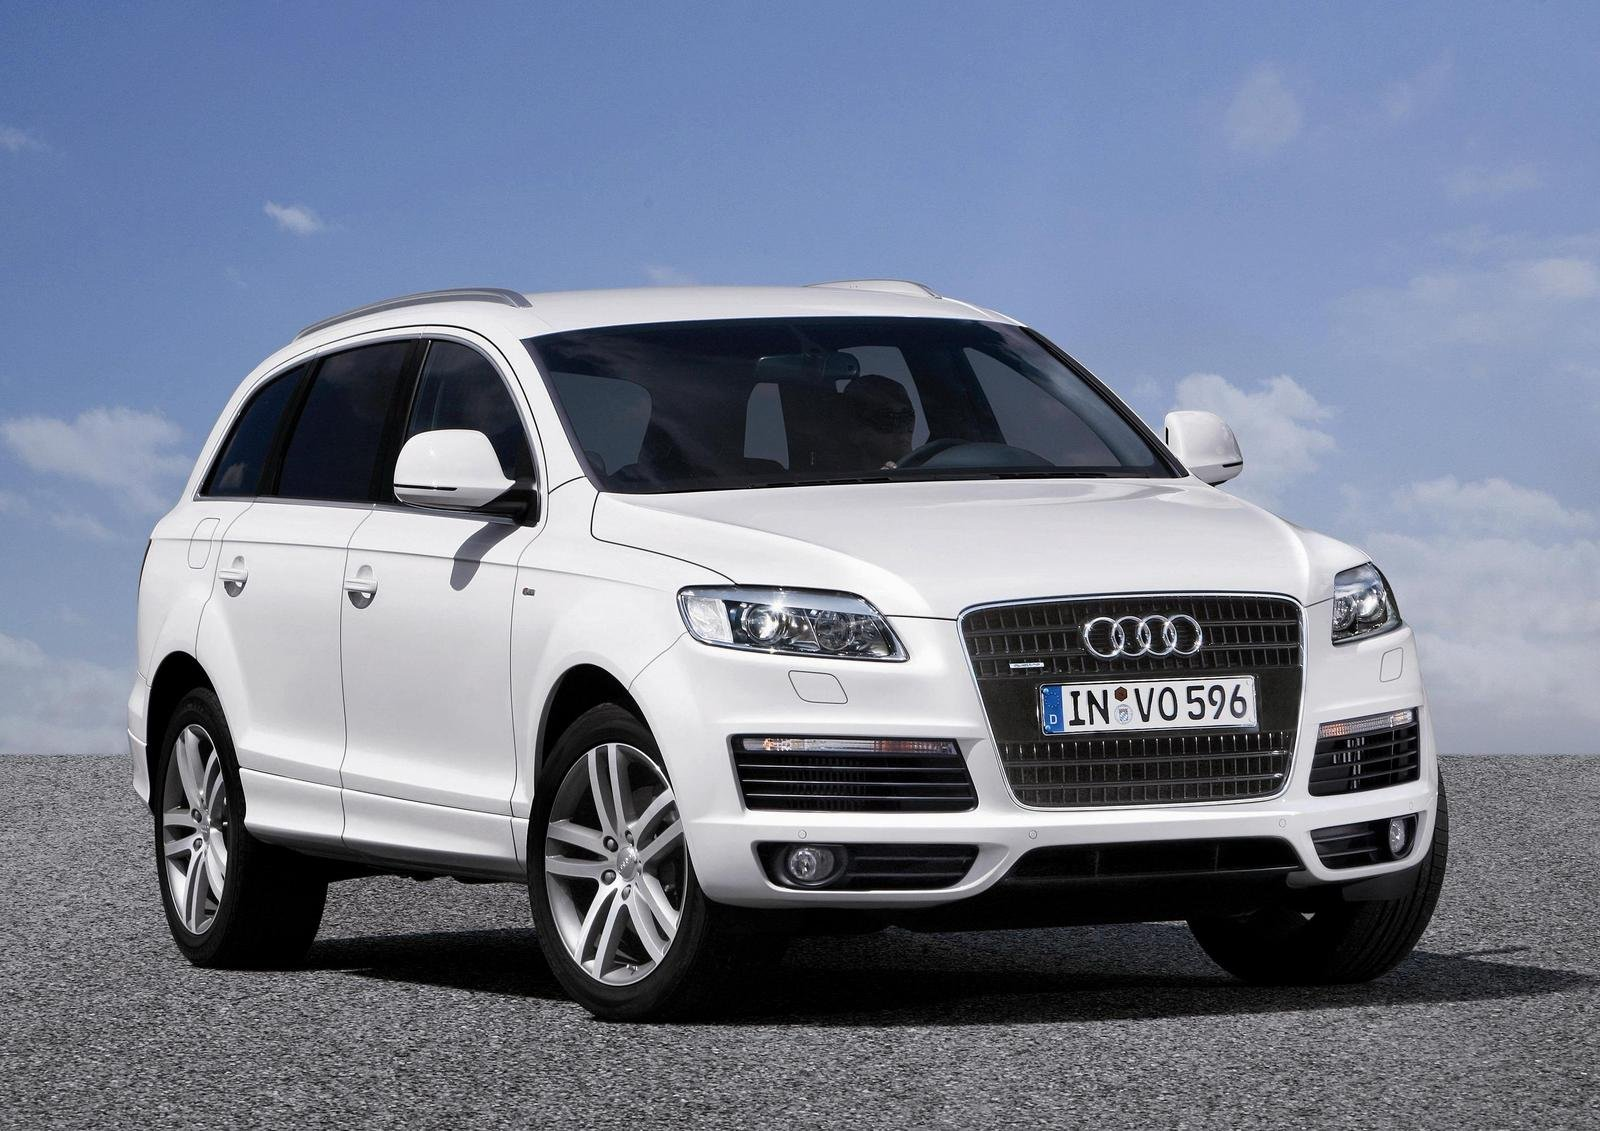 2007 audi q7 3 0 tdi review gallery top speed. Black Bedroom Furniture Sets. Home Design Ideas